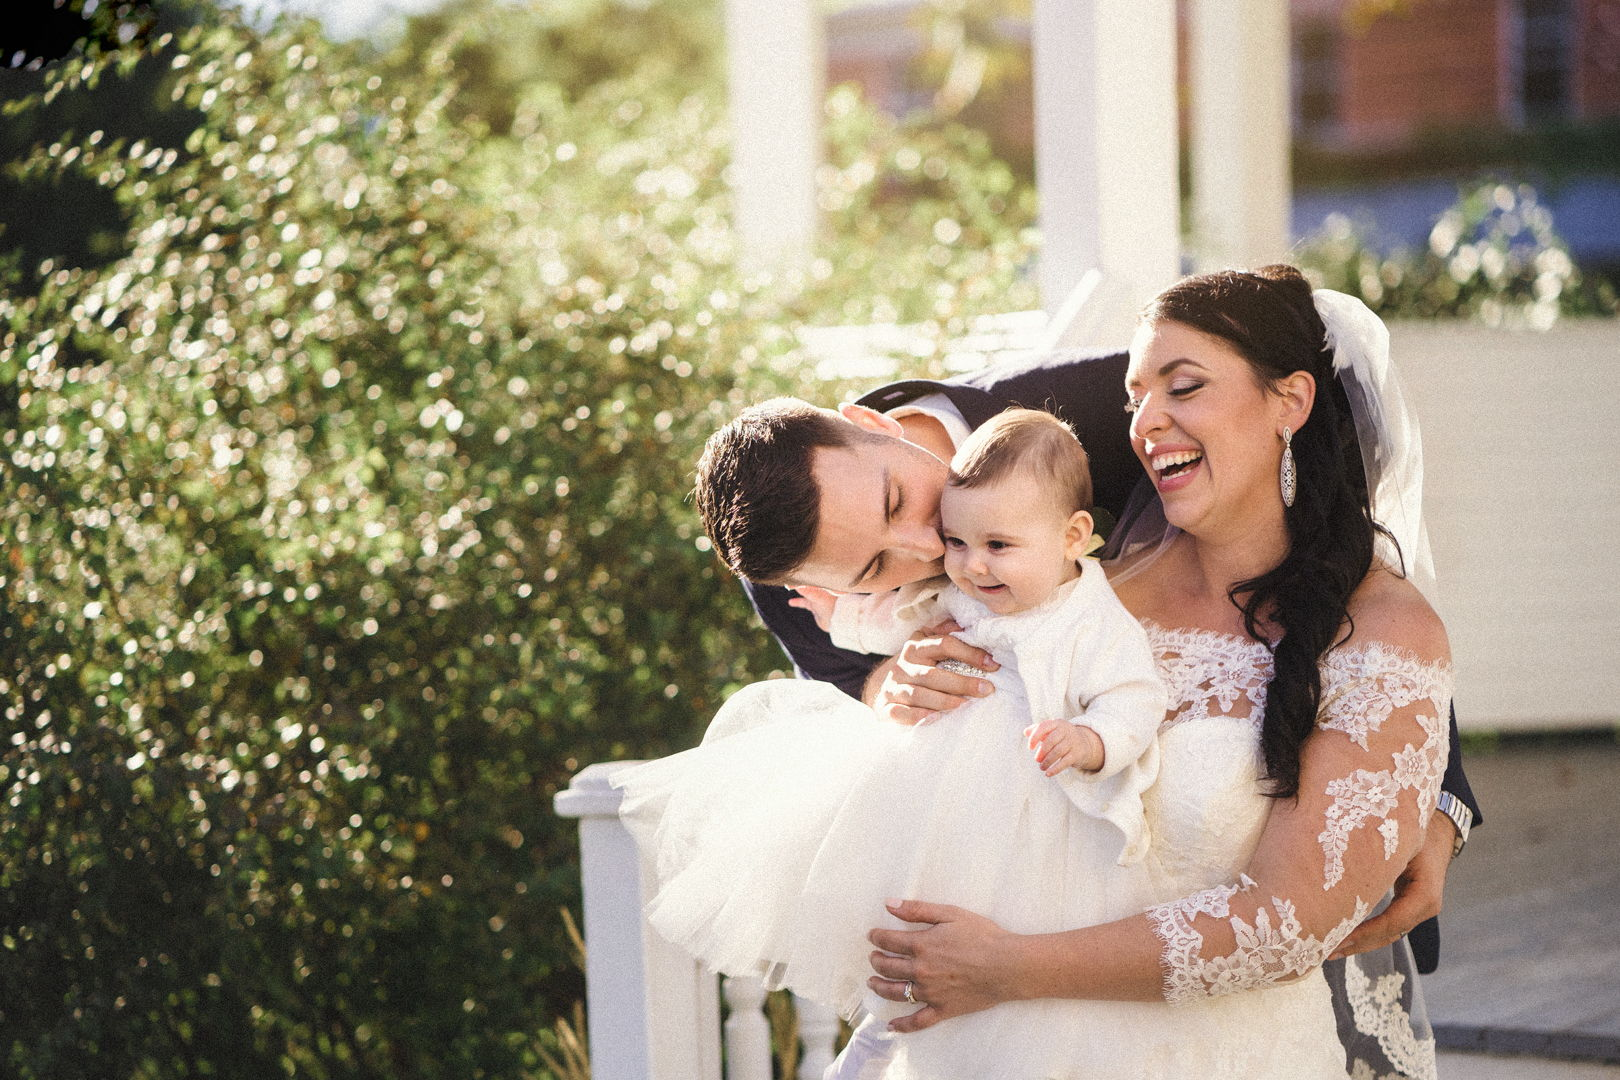 Happy couple with their baby girl at their wedding